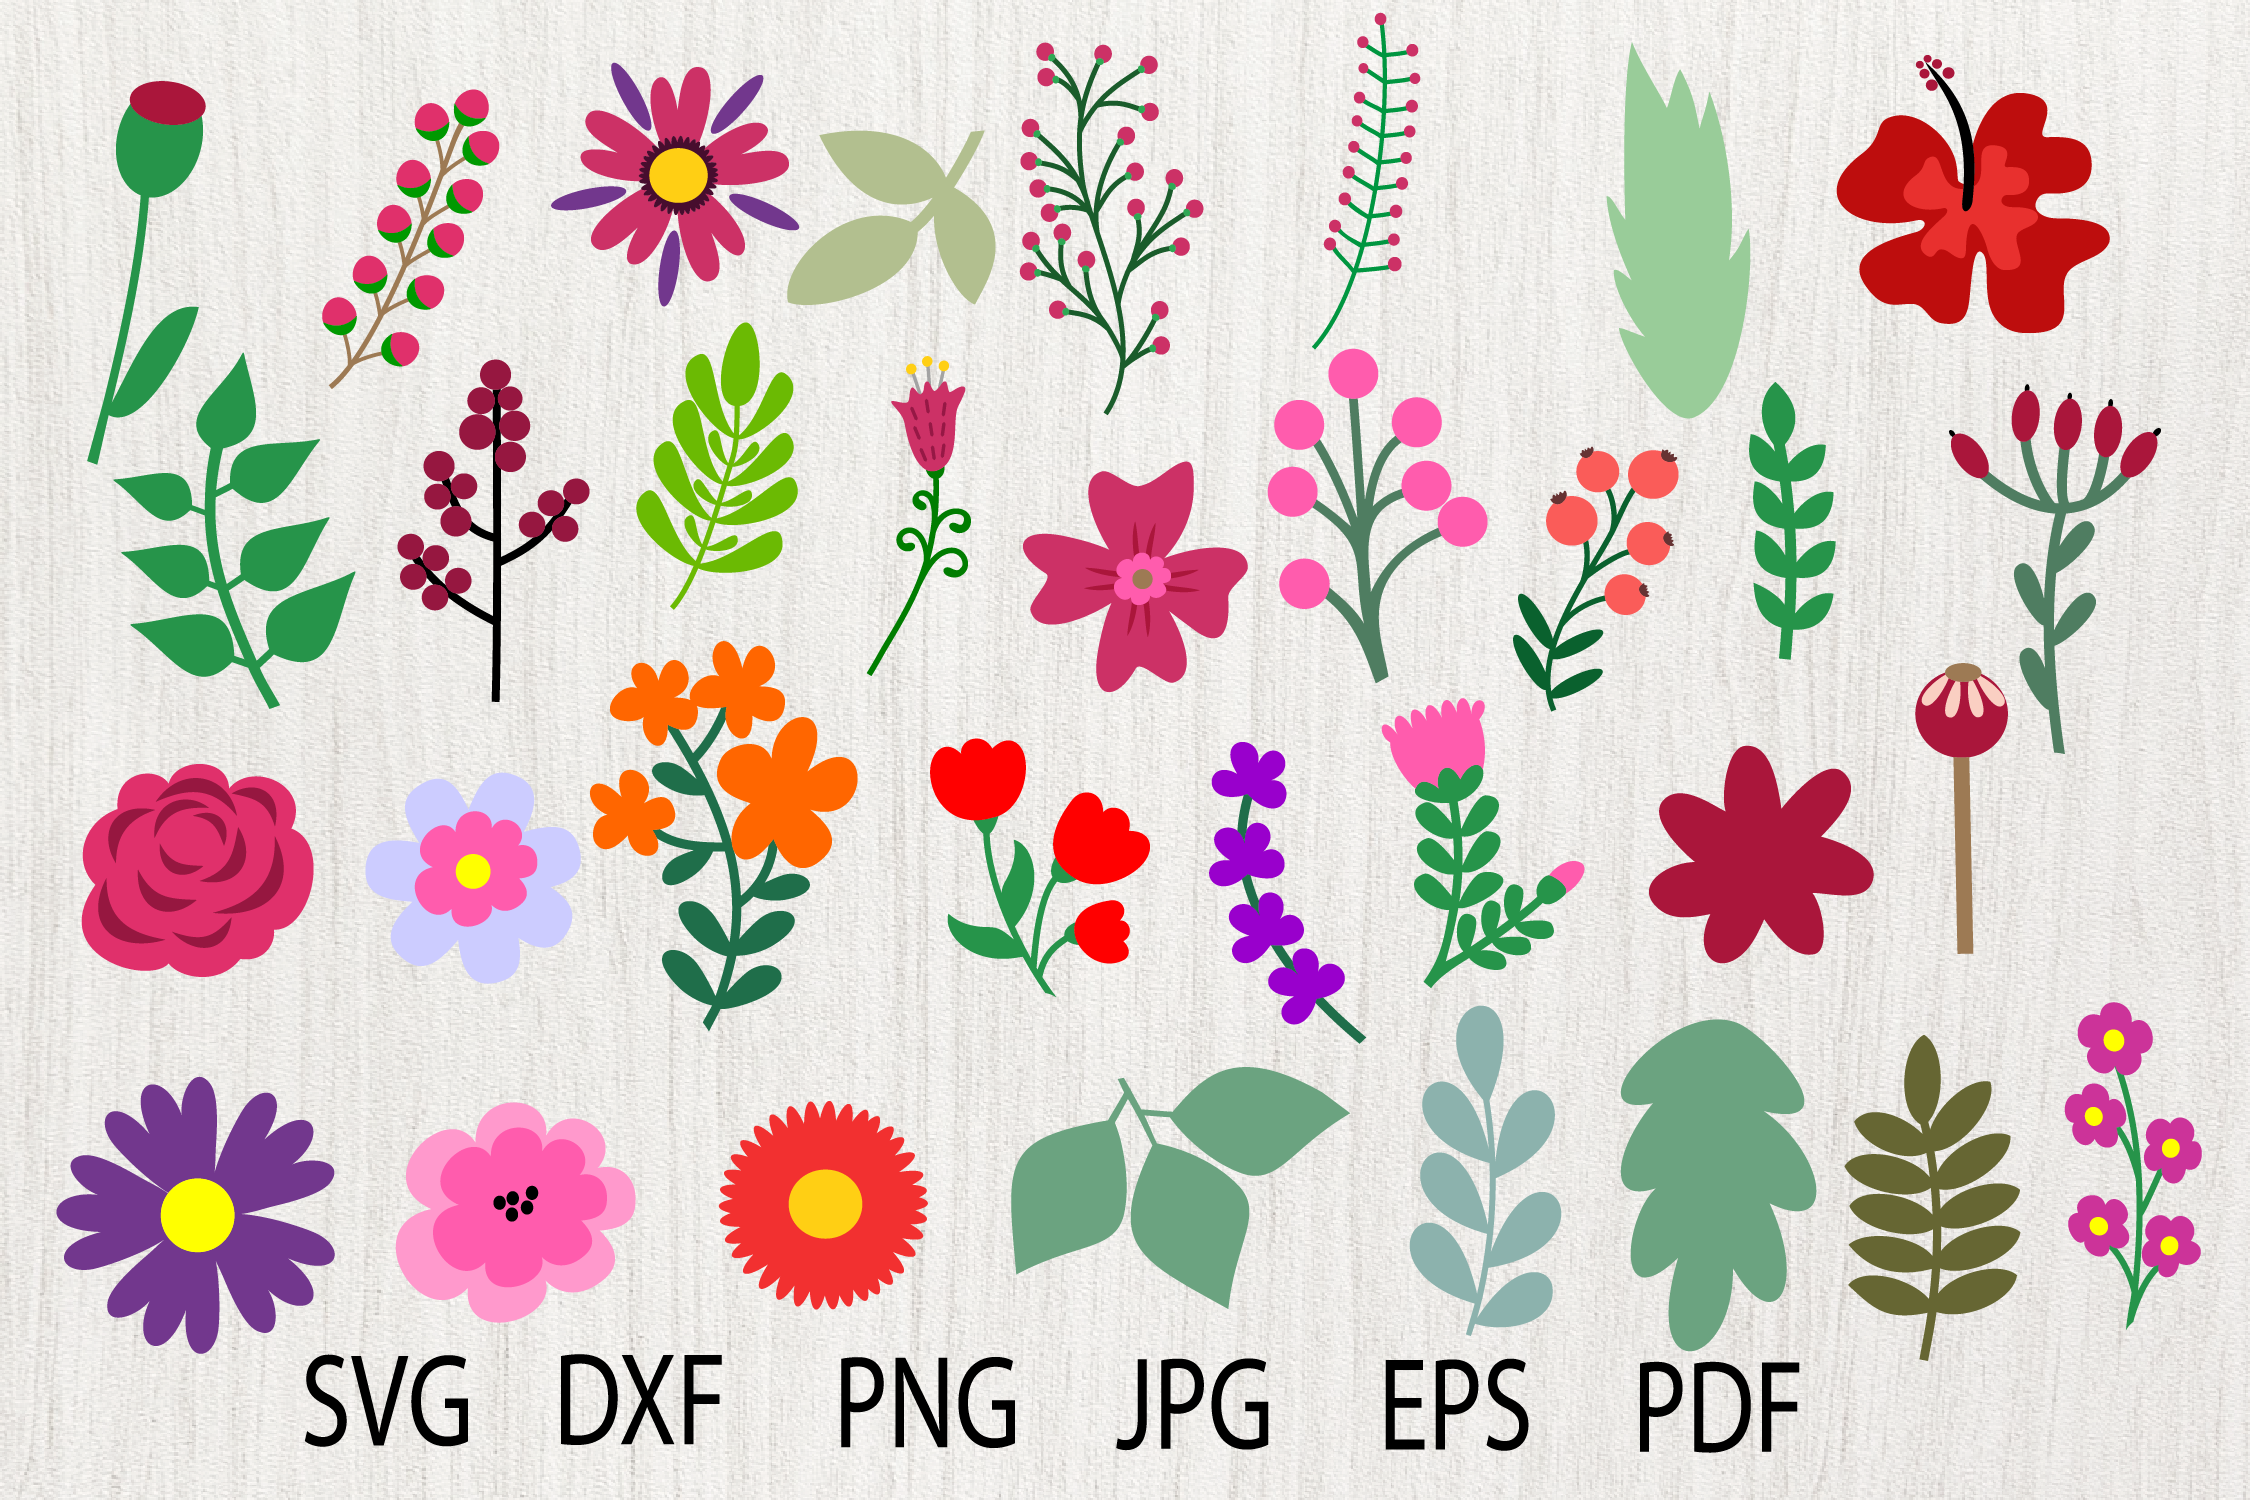 Download Free Flower Graphic By Yulnniya Creative Fabrica for Cricut Explore, Silhouette and other cutting machines.